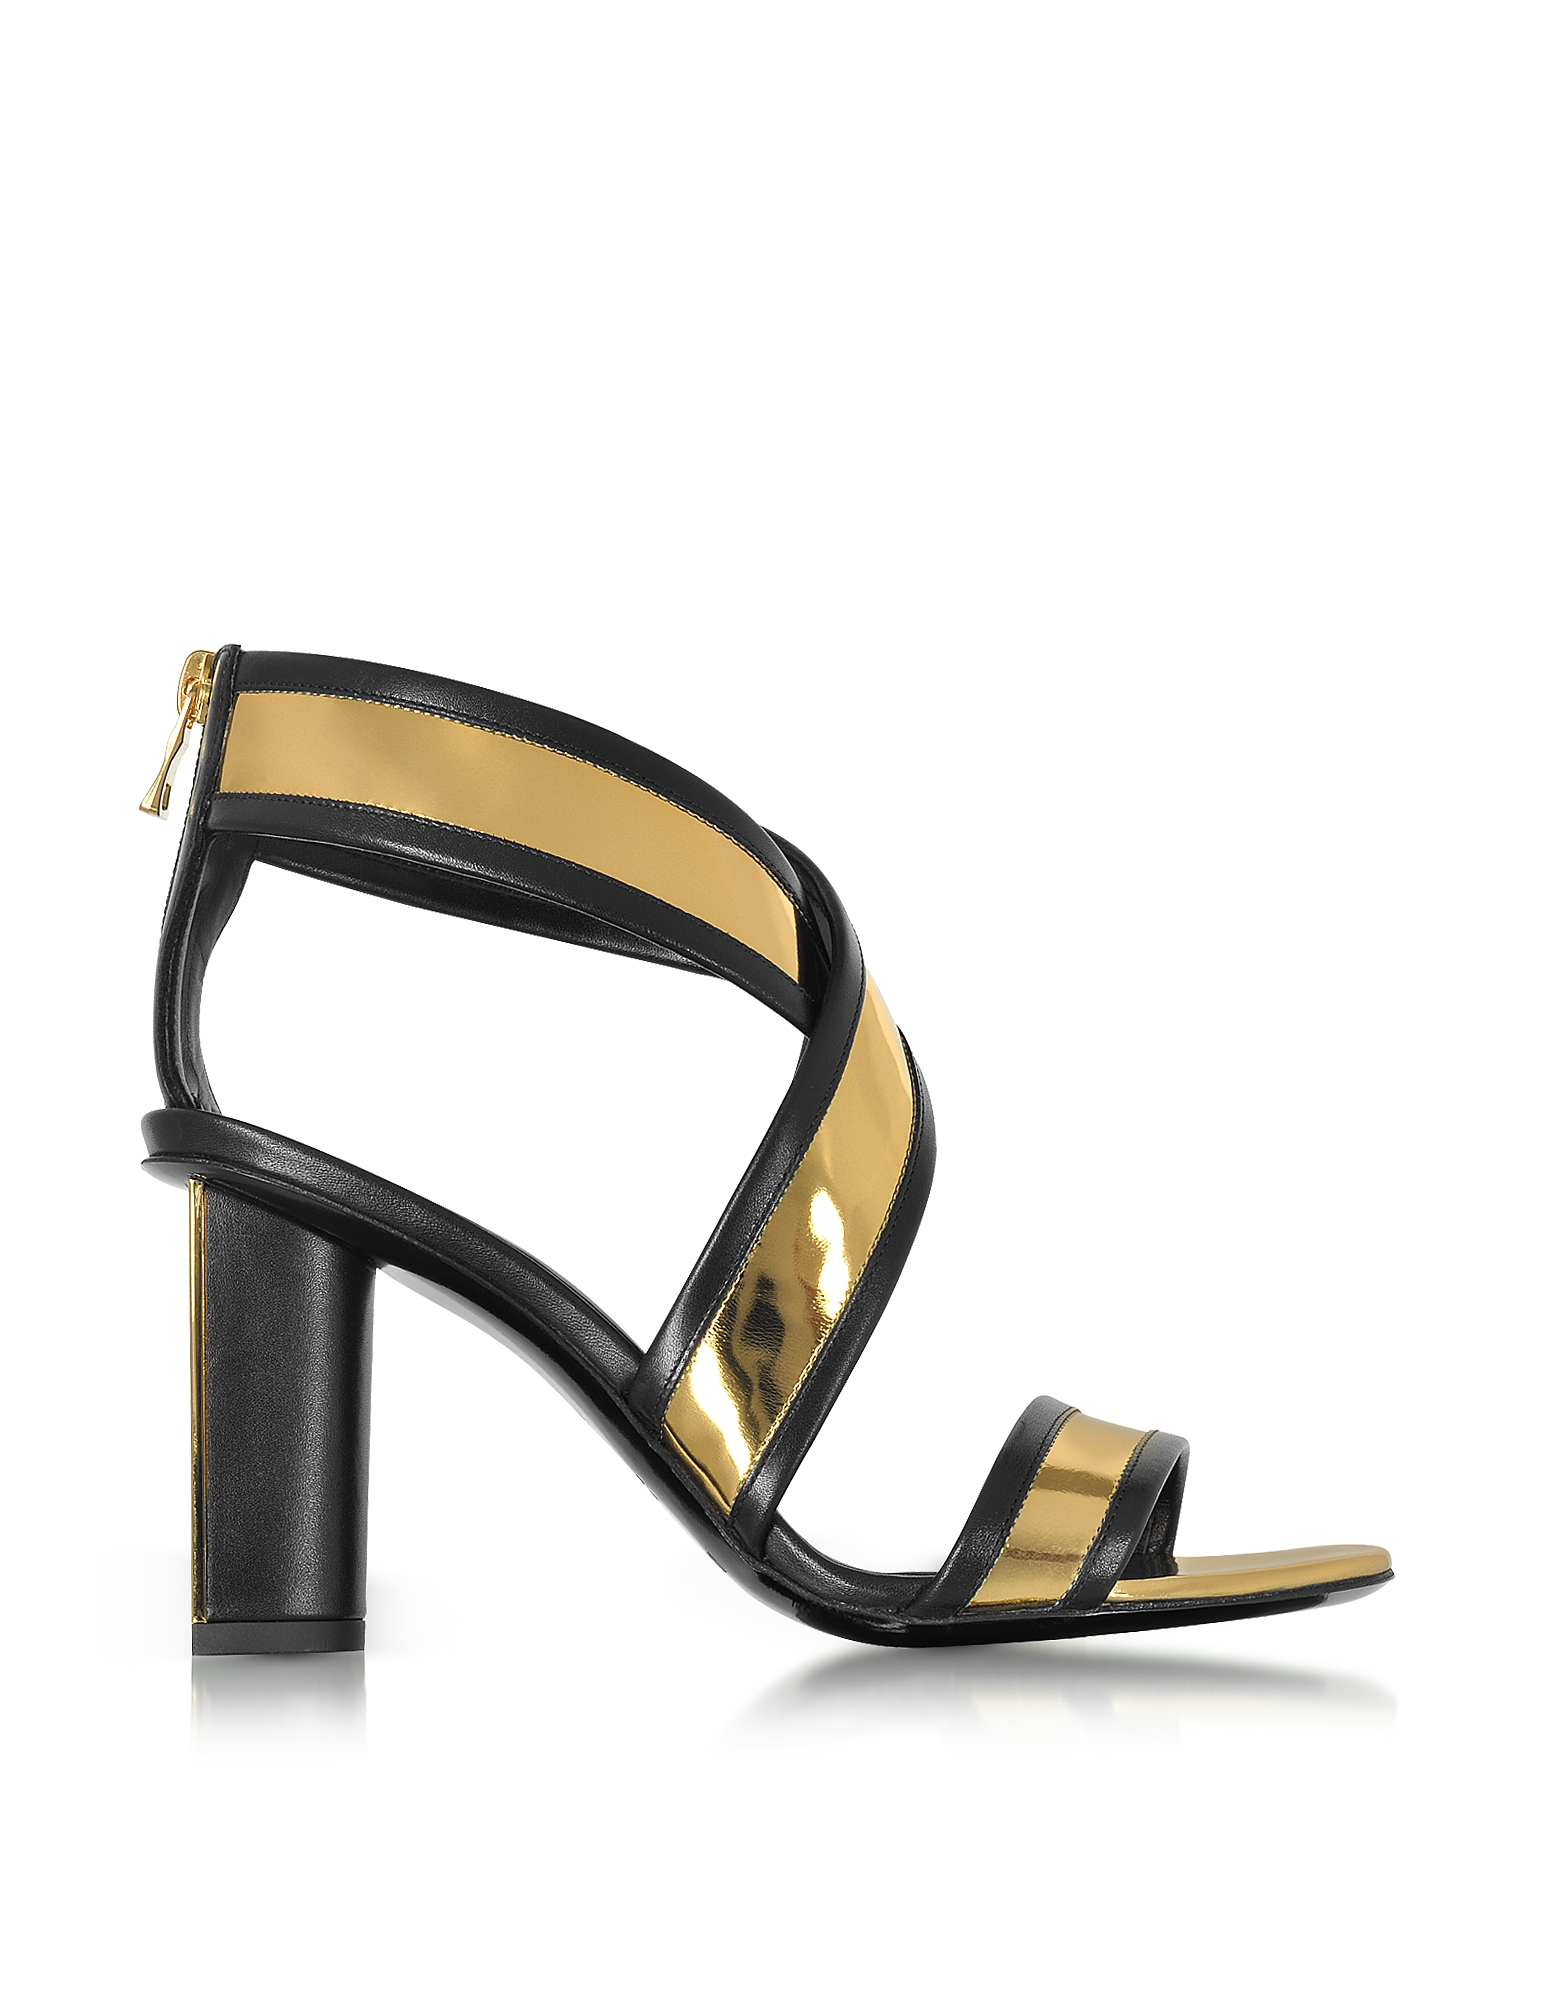 Balmain Shoes, Aska Black and Gold Metallic Leather Heel Sandal